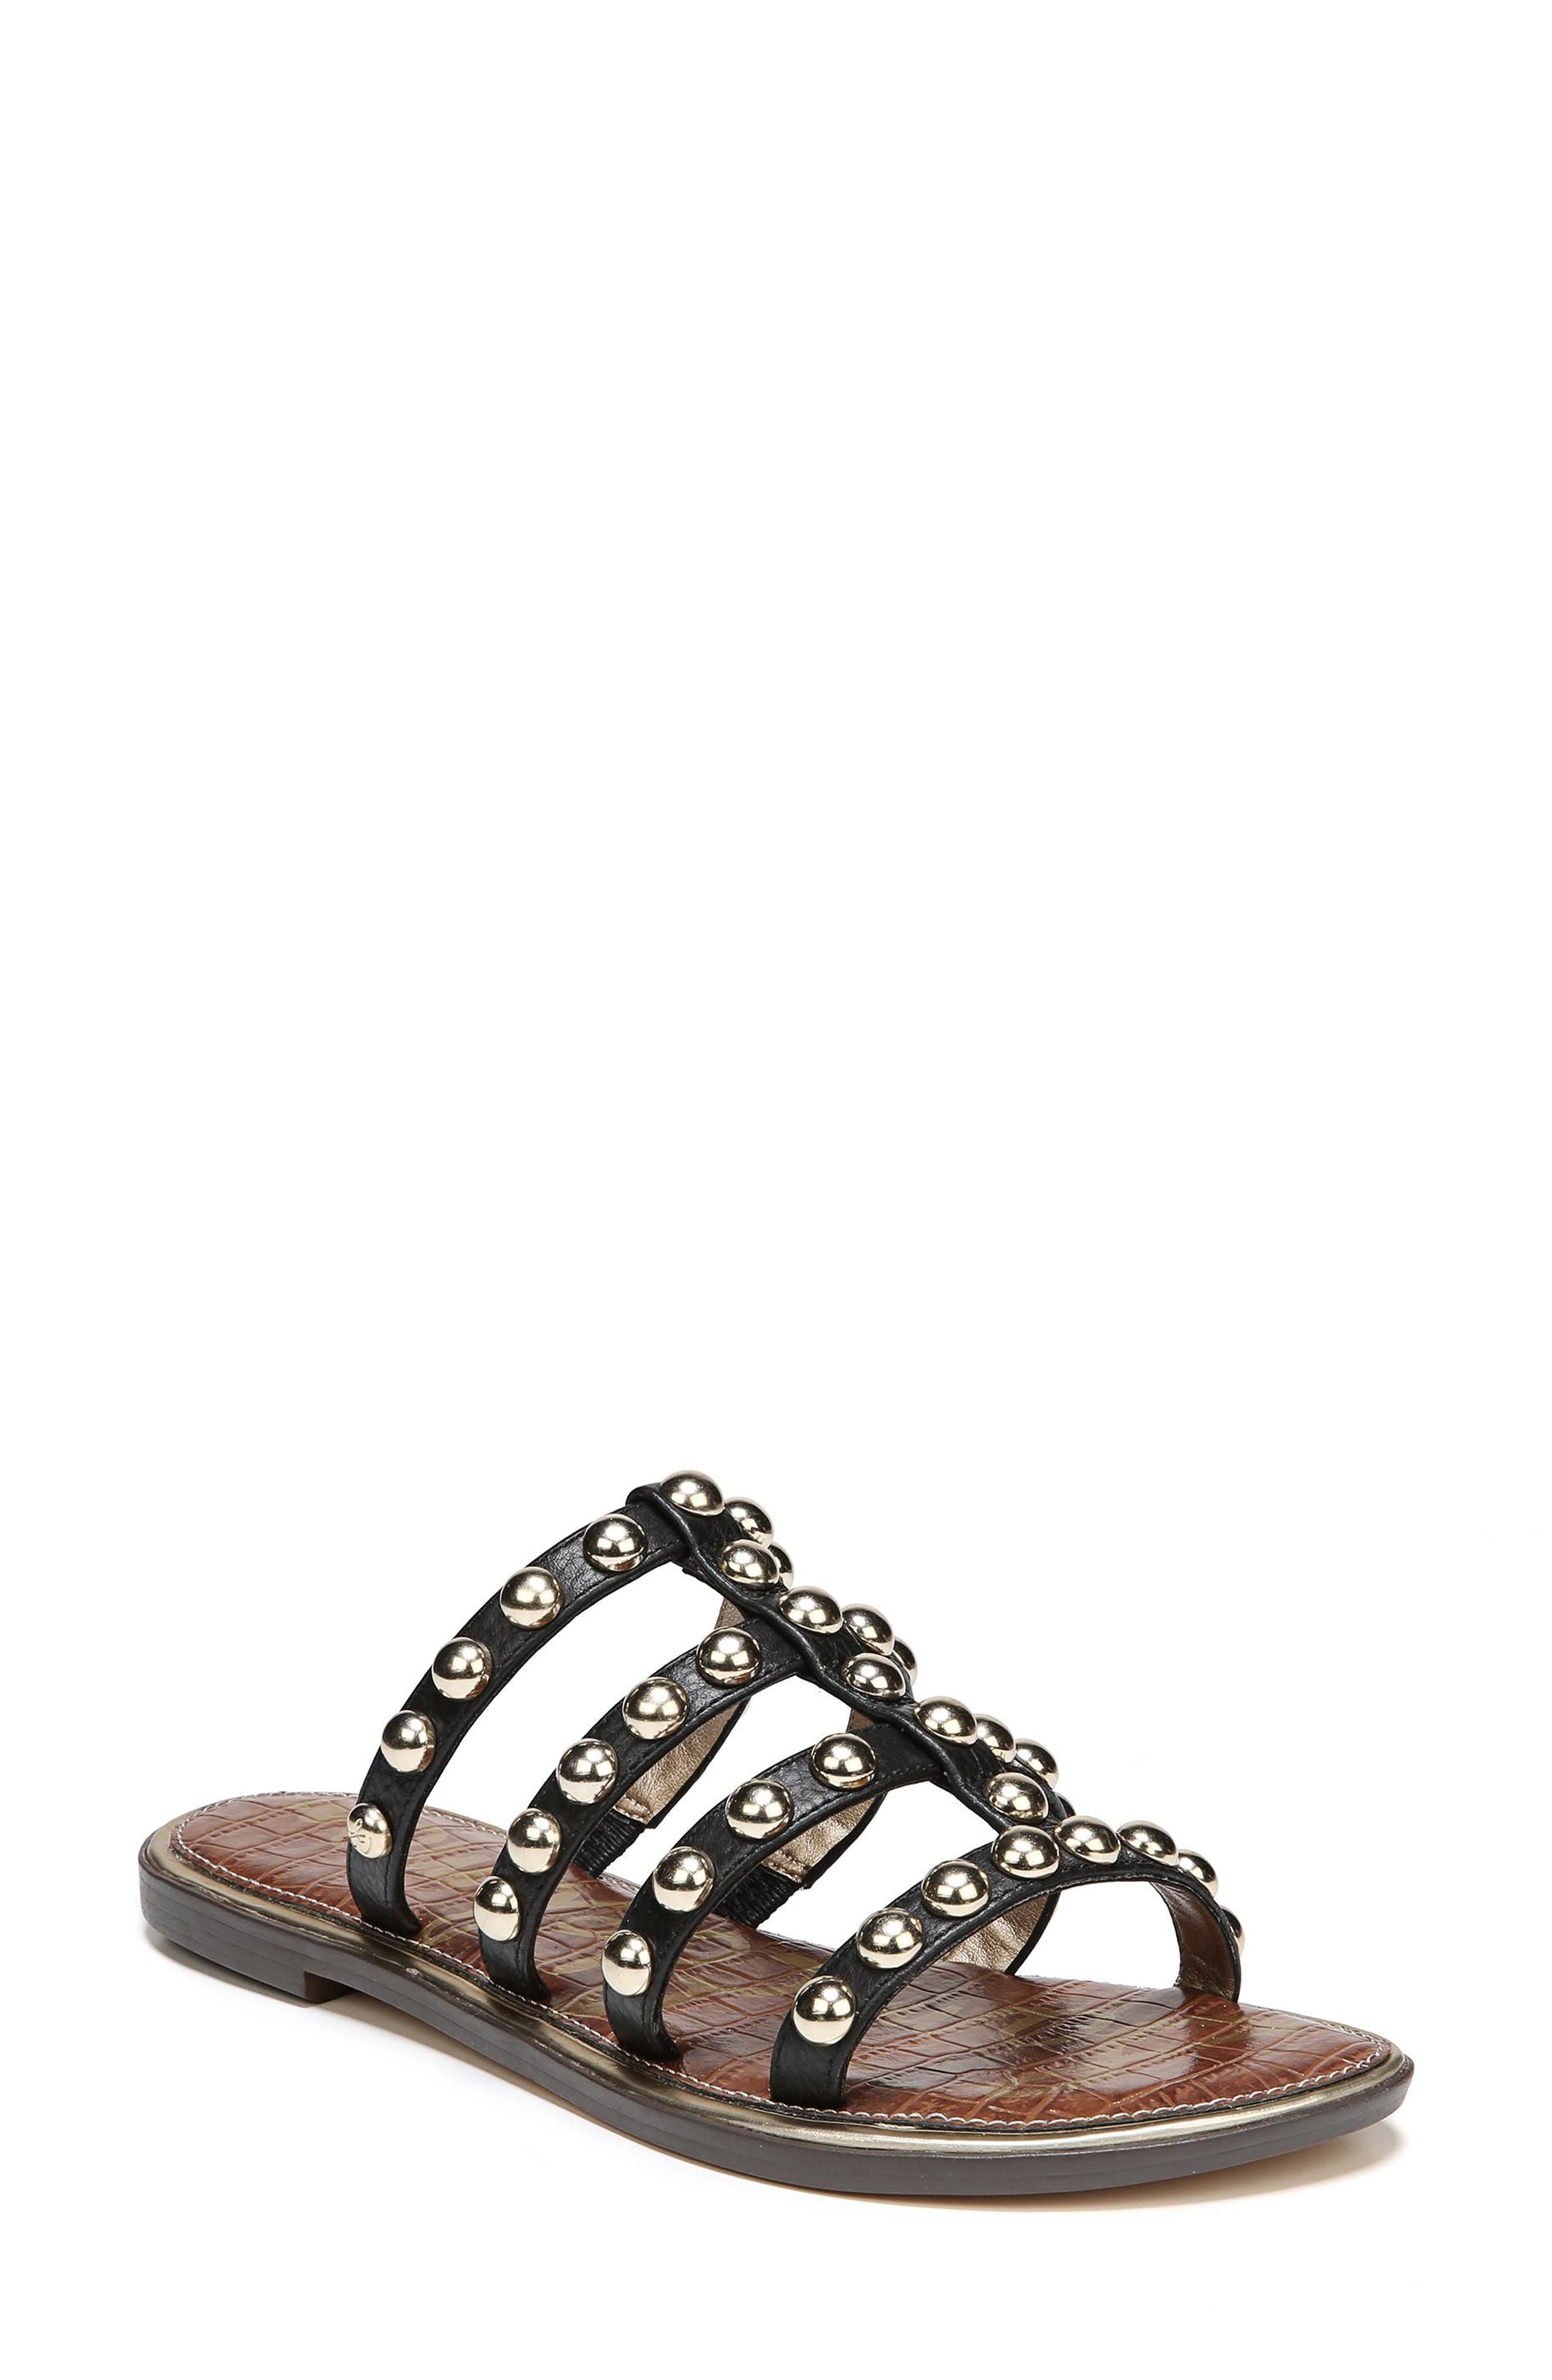 Glenn Studded Slide Sandal,                             Main thumbnail 1, color,                             001